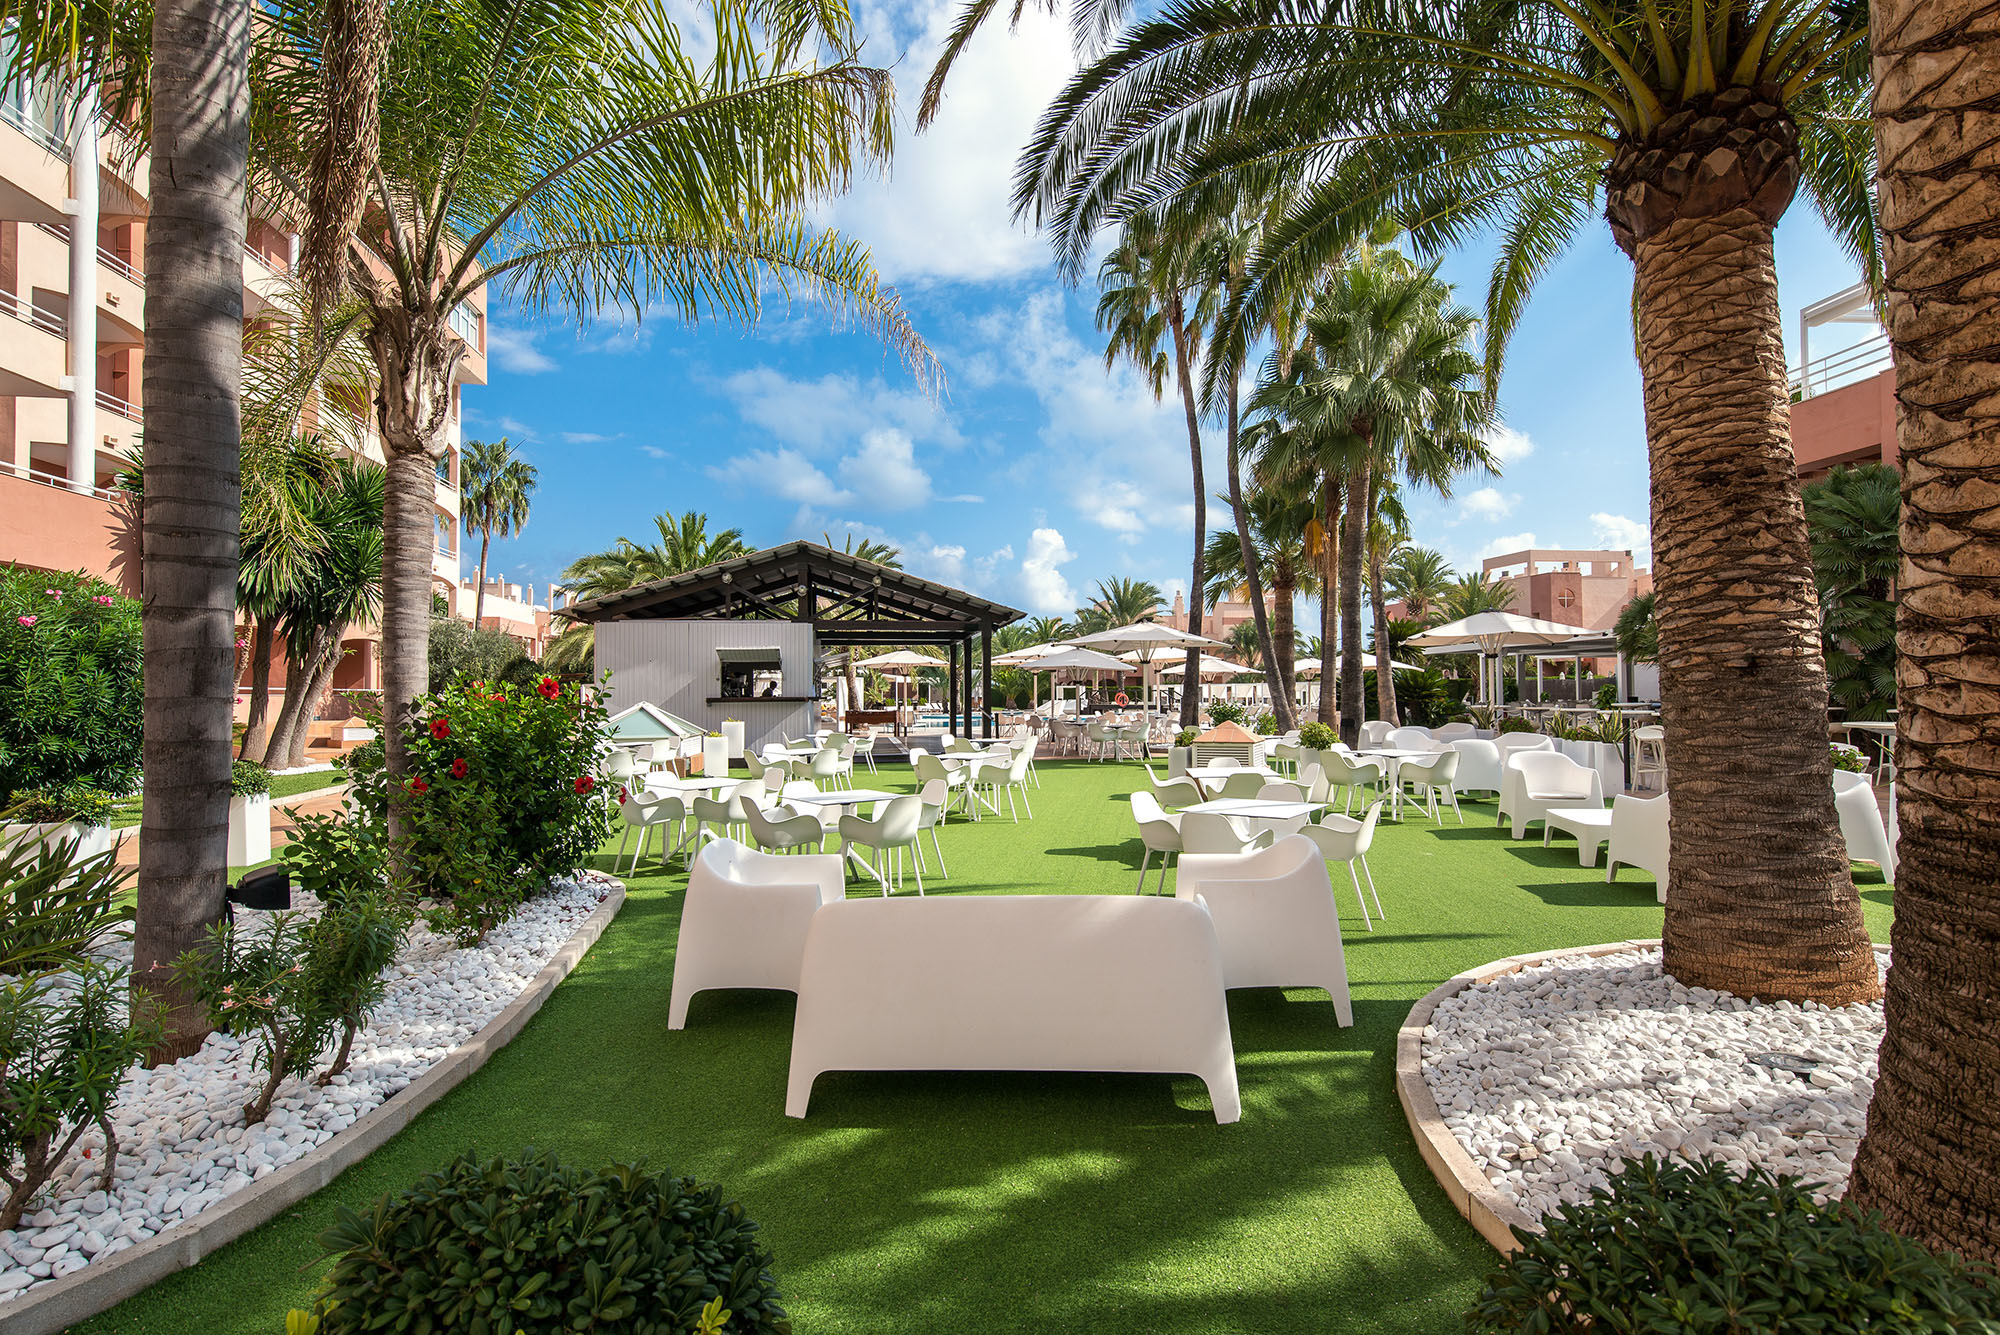 Restaurante-La-Terraza-Oliva-Nova-Beach-Golf-Resort